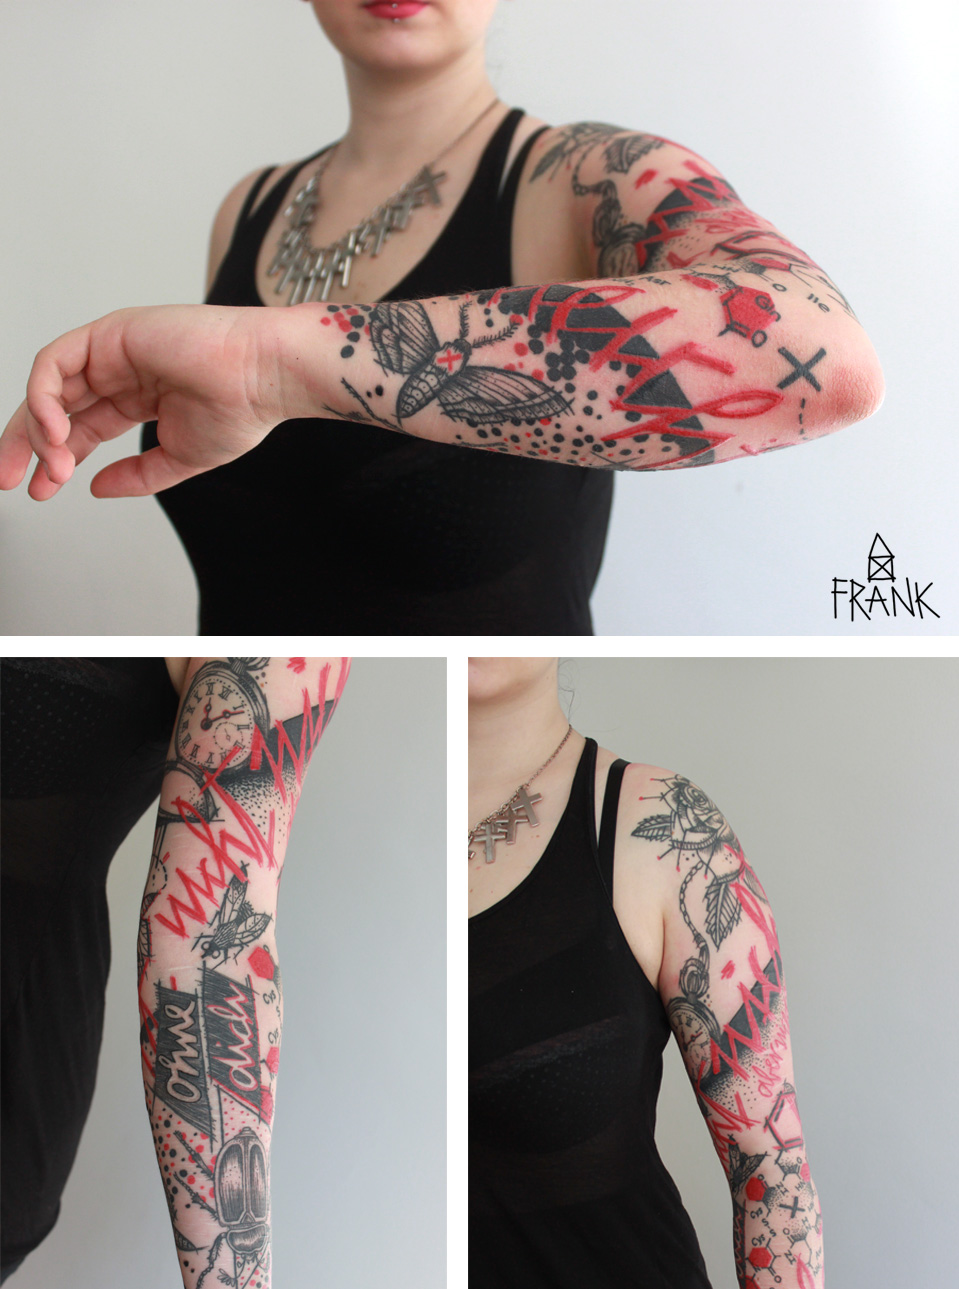 MiriamFrank_Tattoo_Abstrakt_Arm